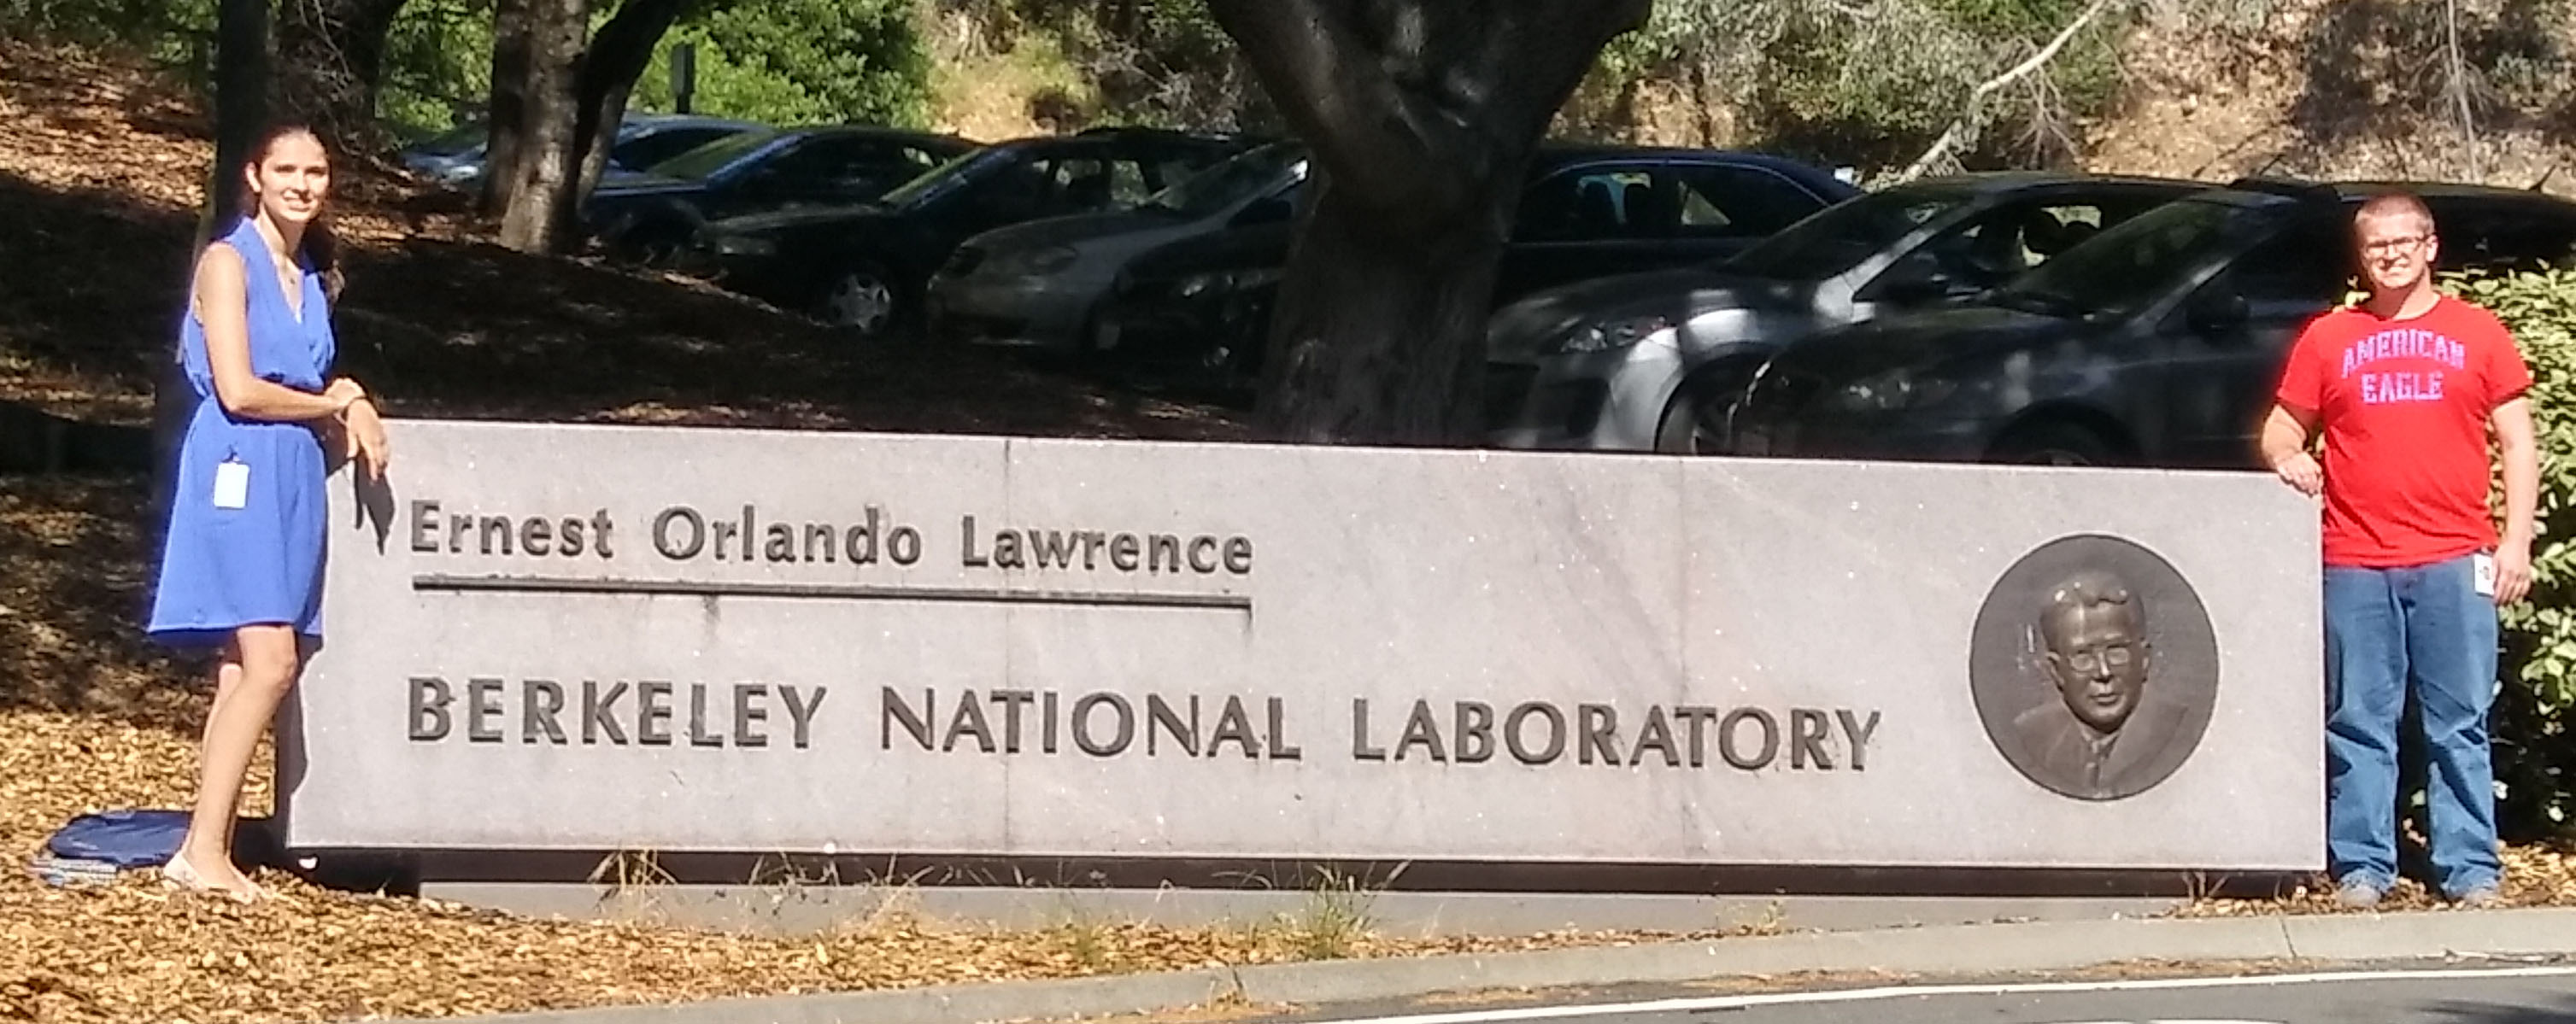 Alexandra Ballow and Tyler Leibengood stand beside the Lawrence Berkeley National Laboratory sign